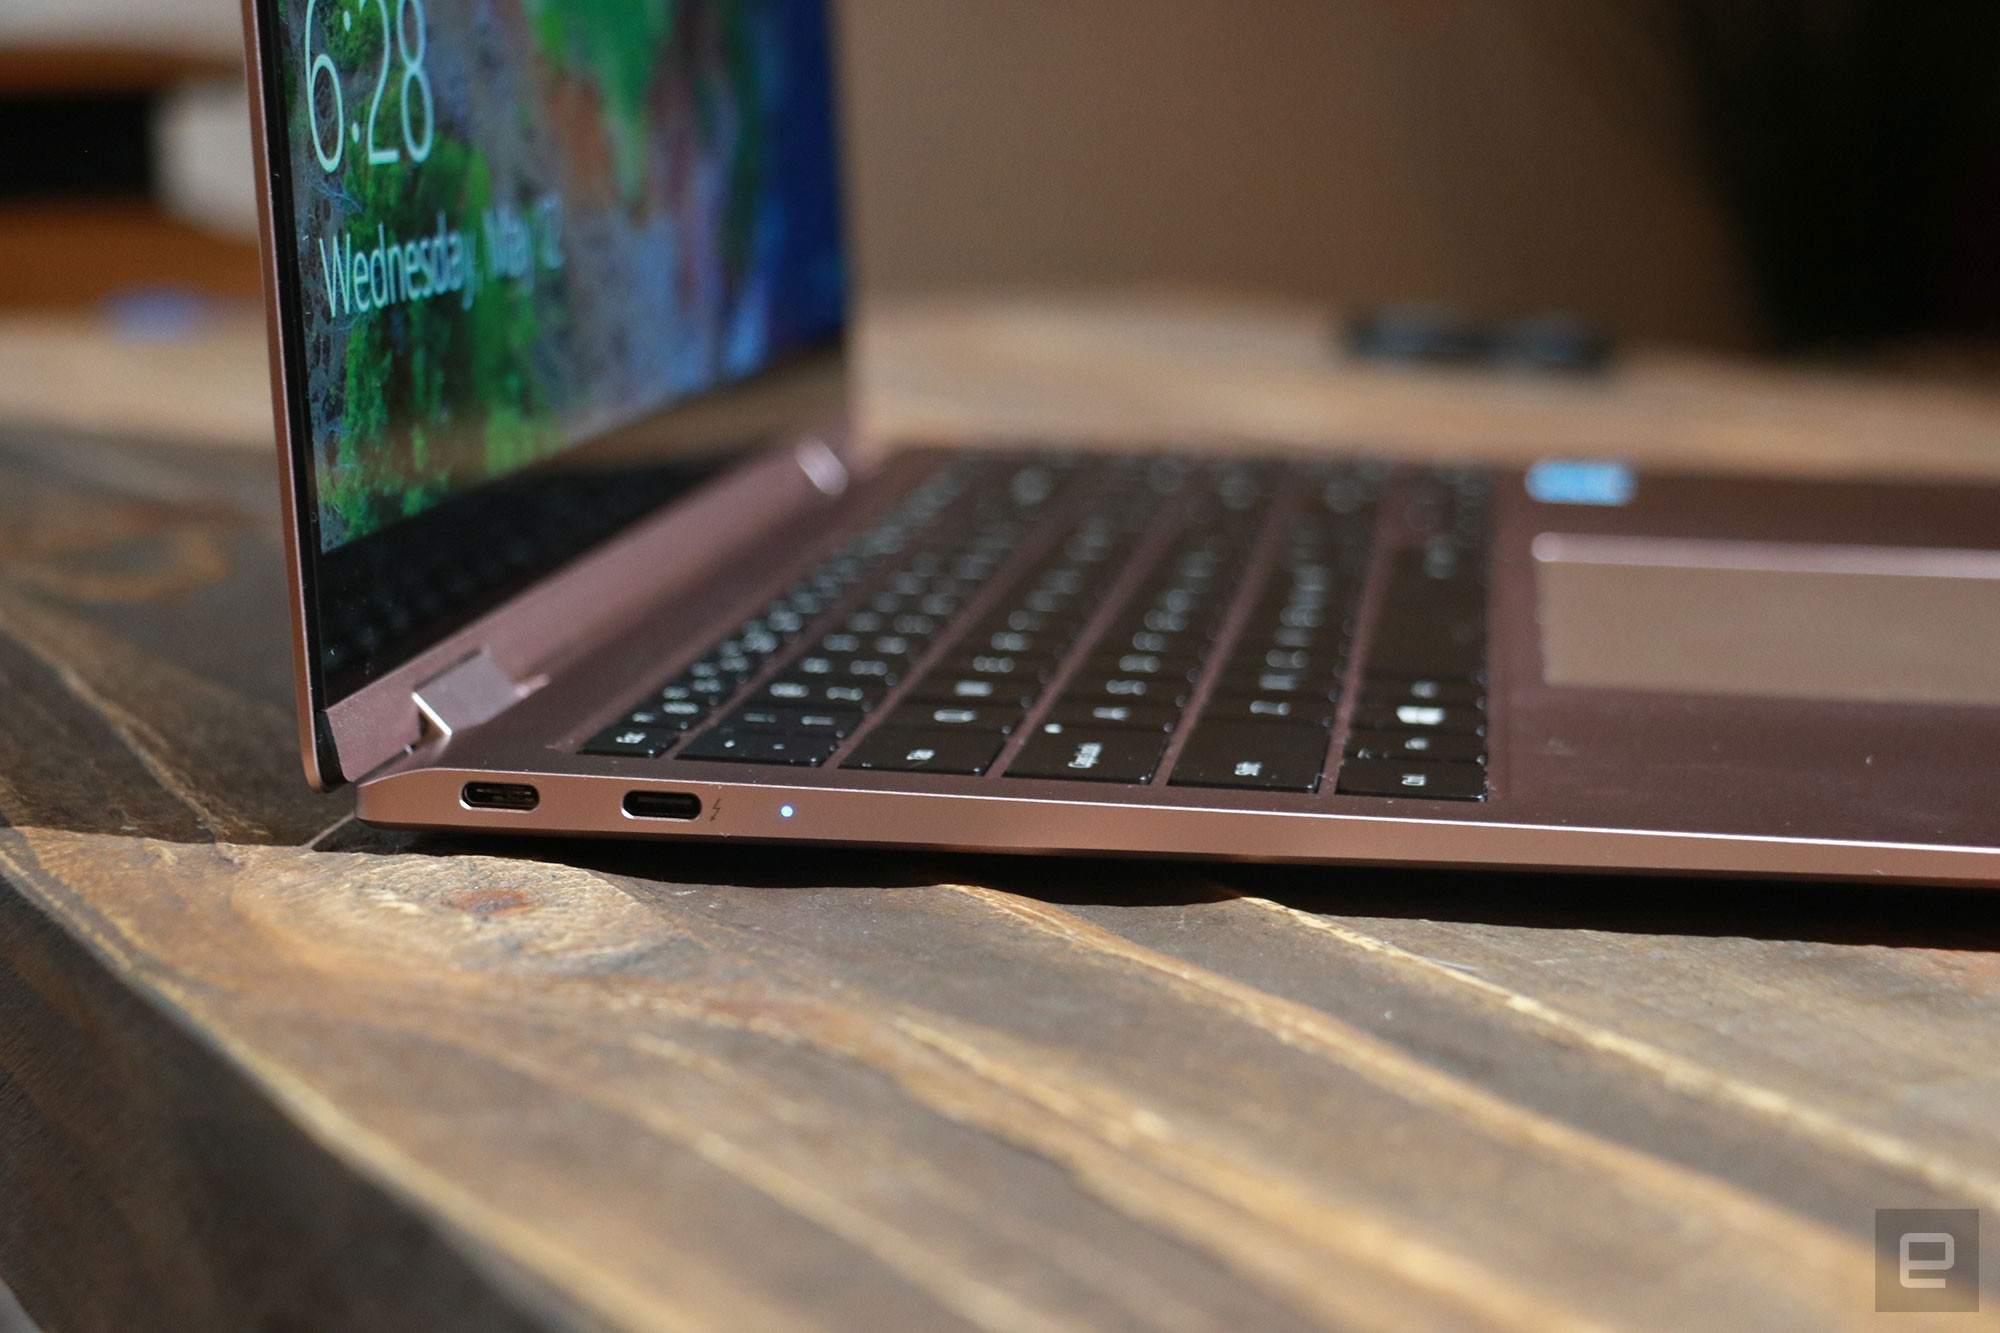 <p>Samsung Galaxy Book Pro 360 review pictures. Close up of the left edge of the Book Pro 360 featuring two USB-C ports and an indicator light.</p>